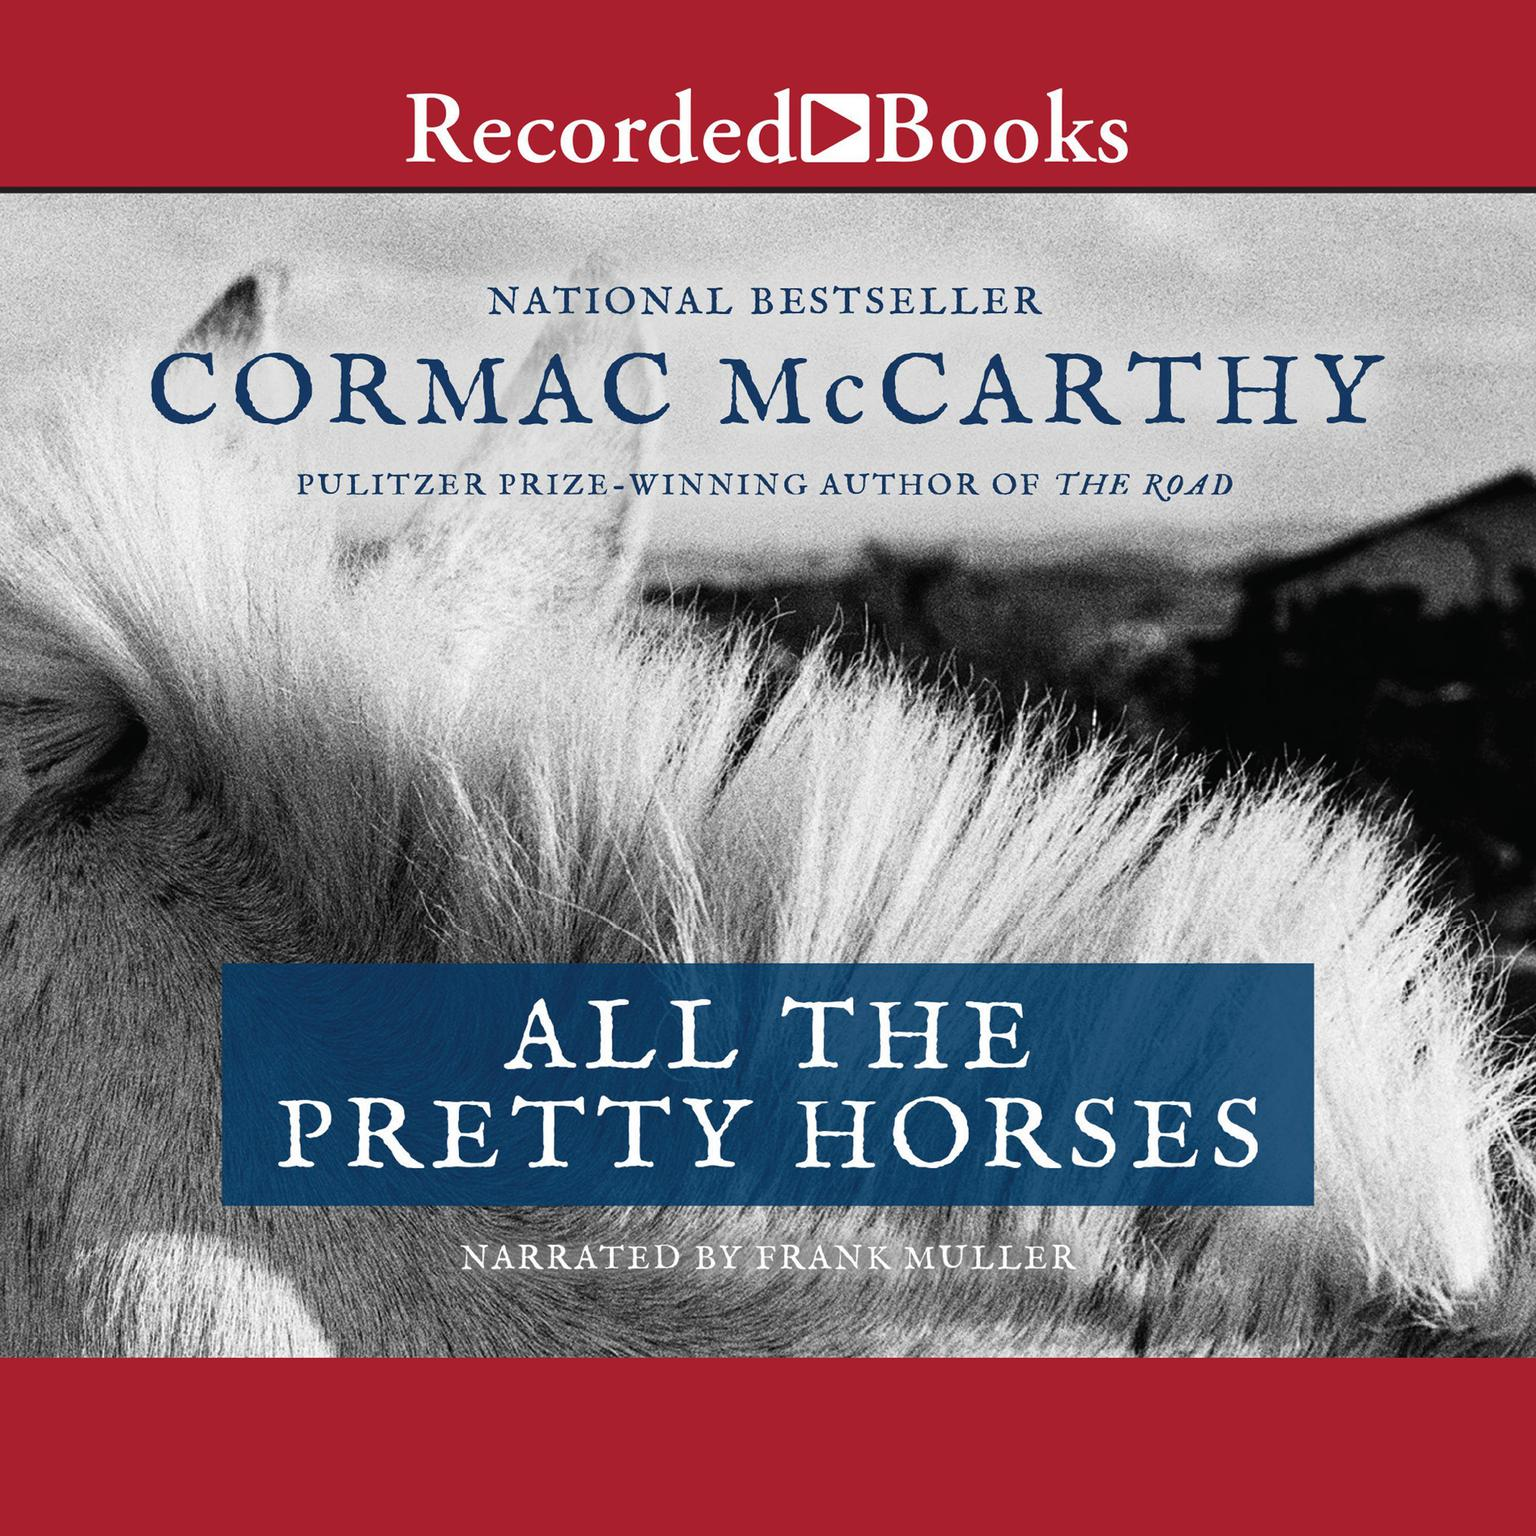 all the pretty horses by cormac mccarthy All the pretty horses (the border trilogy, book 1) by mccarthy, cormac and a great selection of similar used, new and collectible books available now at abebookscom.